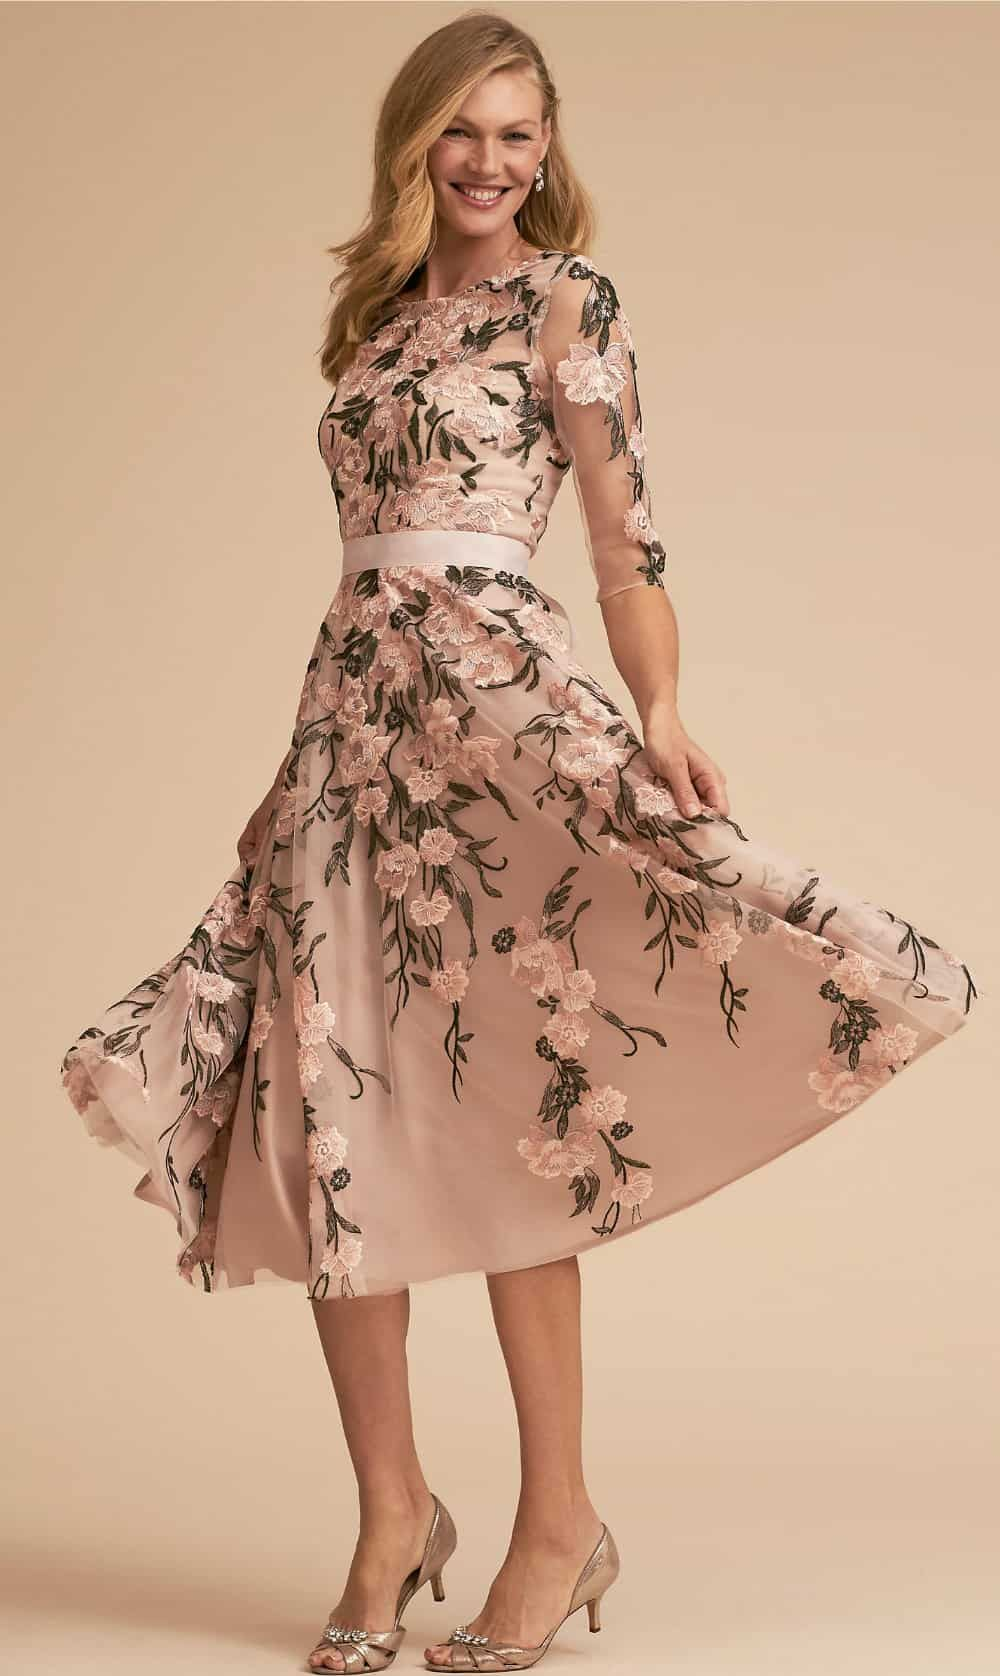 Tea-length-floral-dress-with-sleeves-for-mother-of-the-bride.jpg